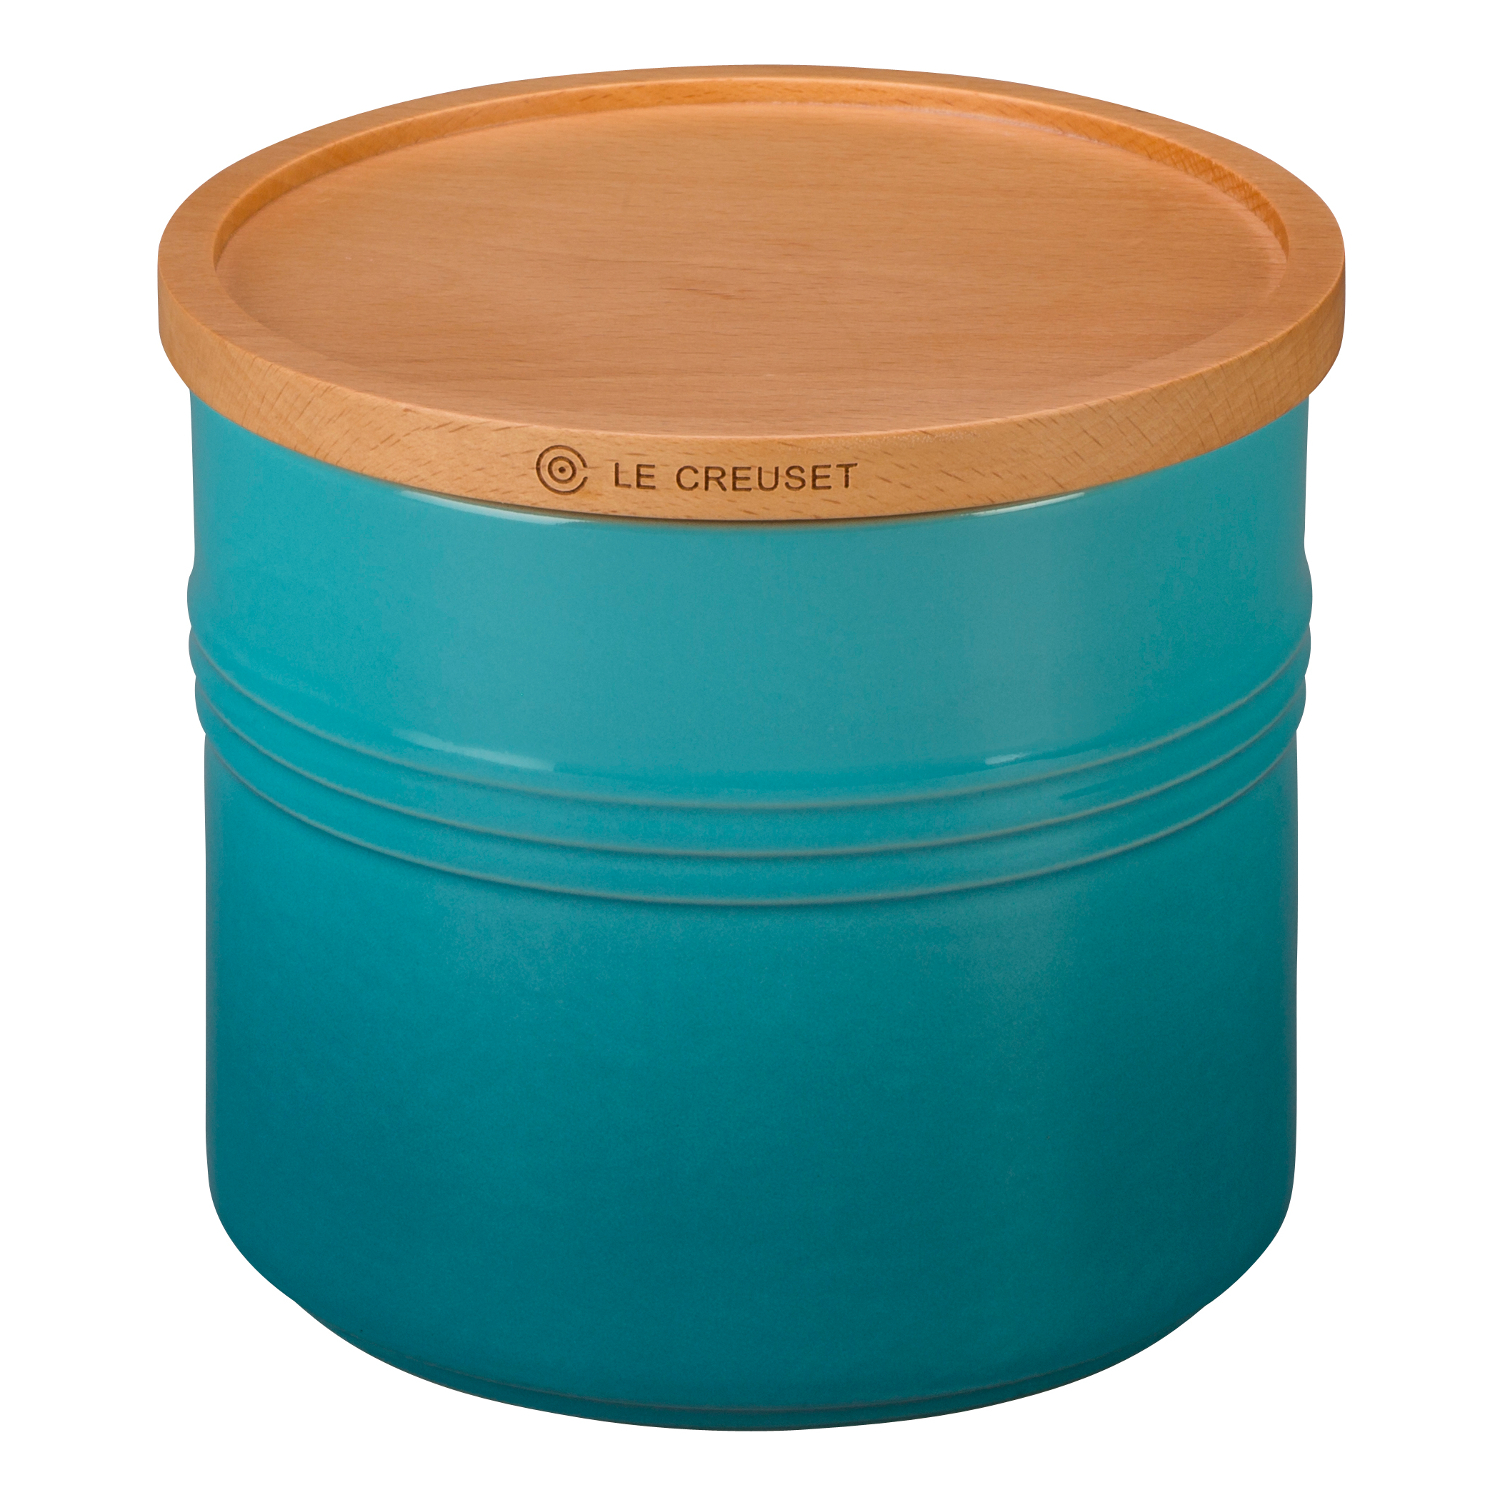 Le Creuset Caribbean Stoneware 1.5 Quart Canister with Wooden Lid